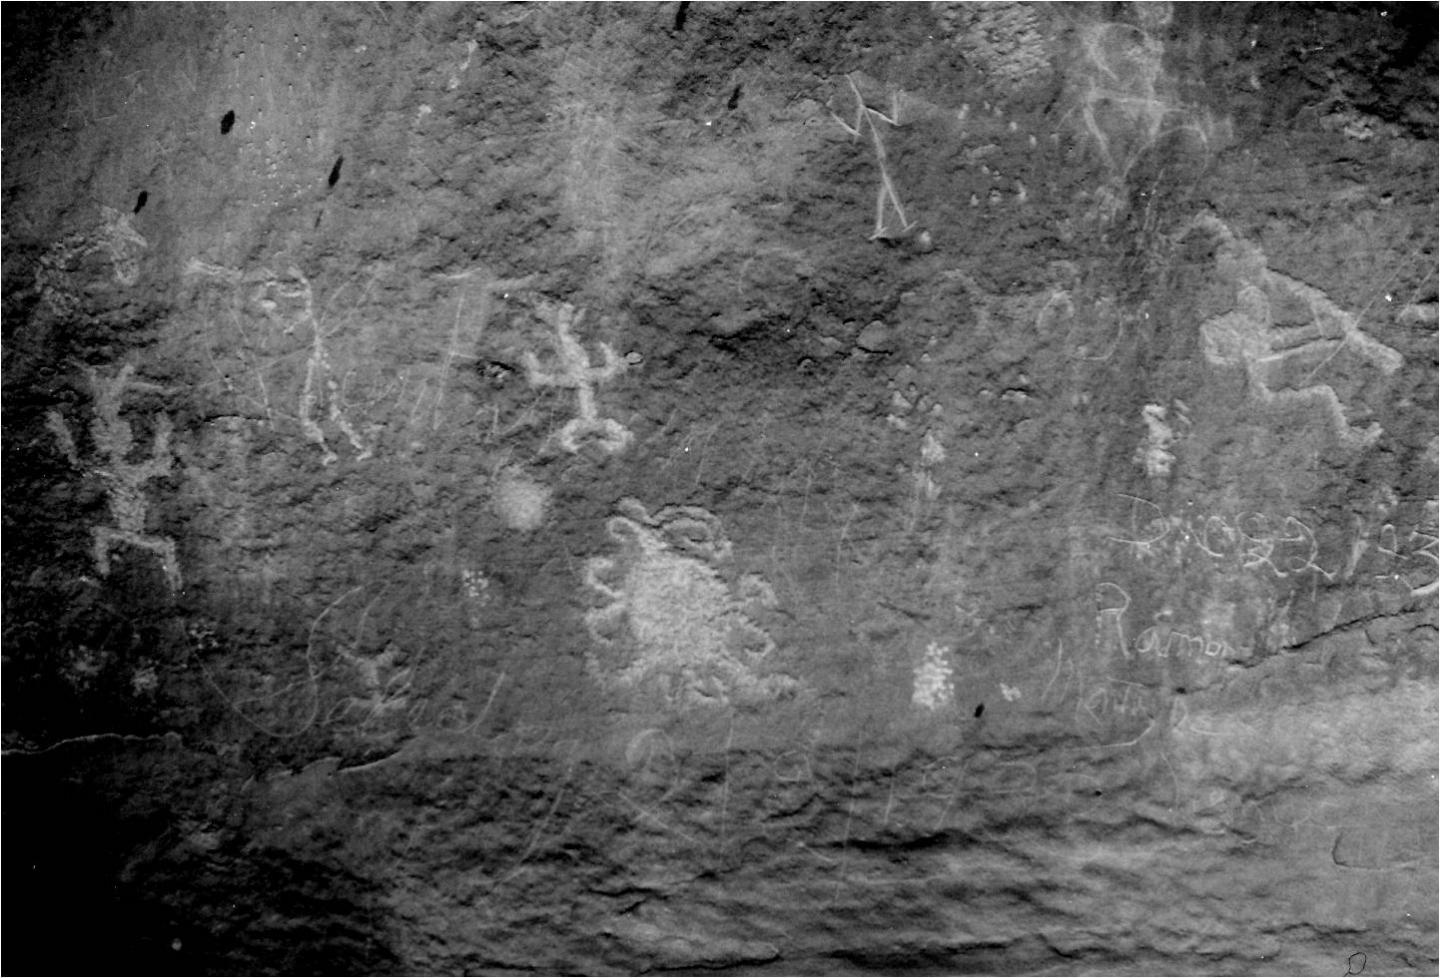 History News of the Week – Does an Ancient Petroglyph Depict a Total Eclipse?